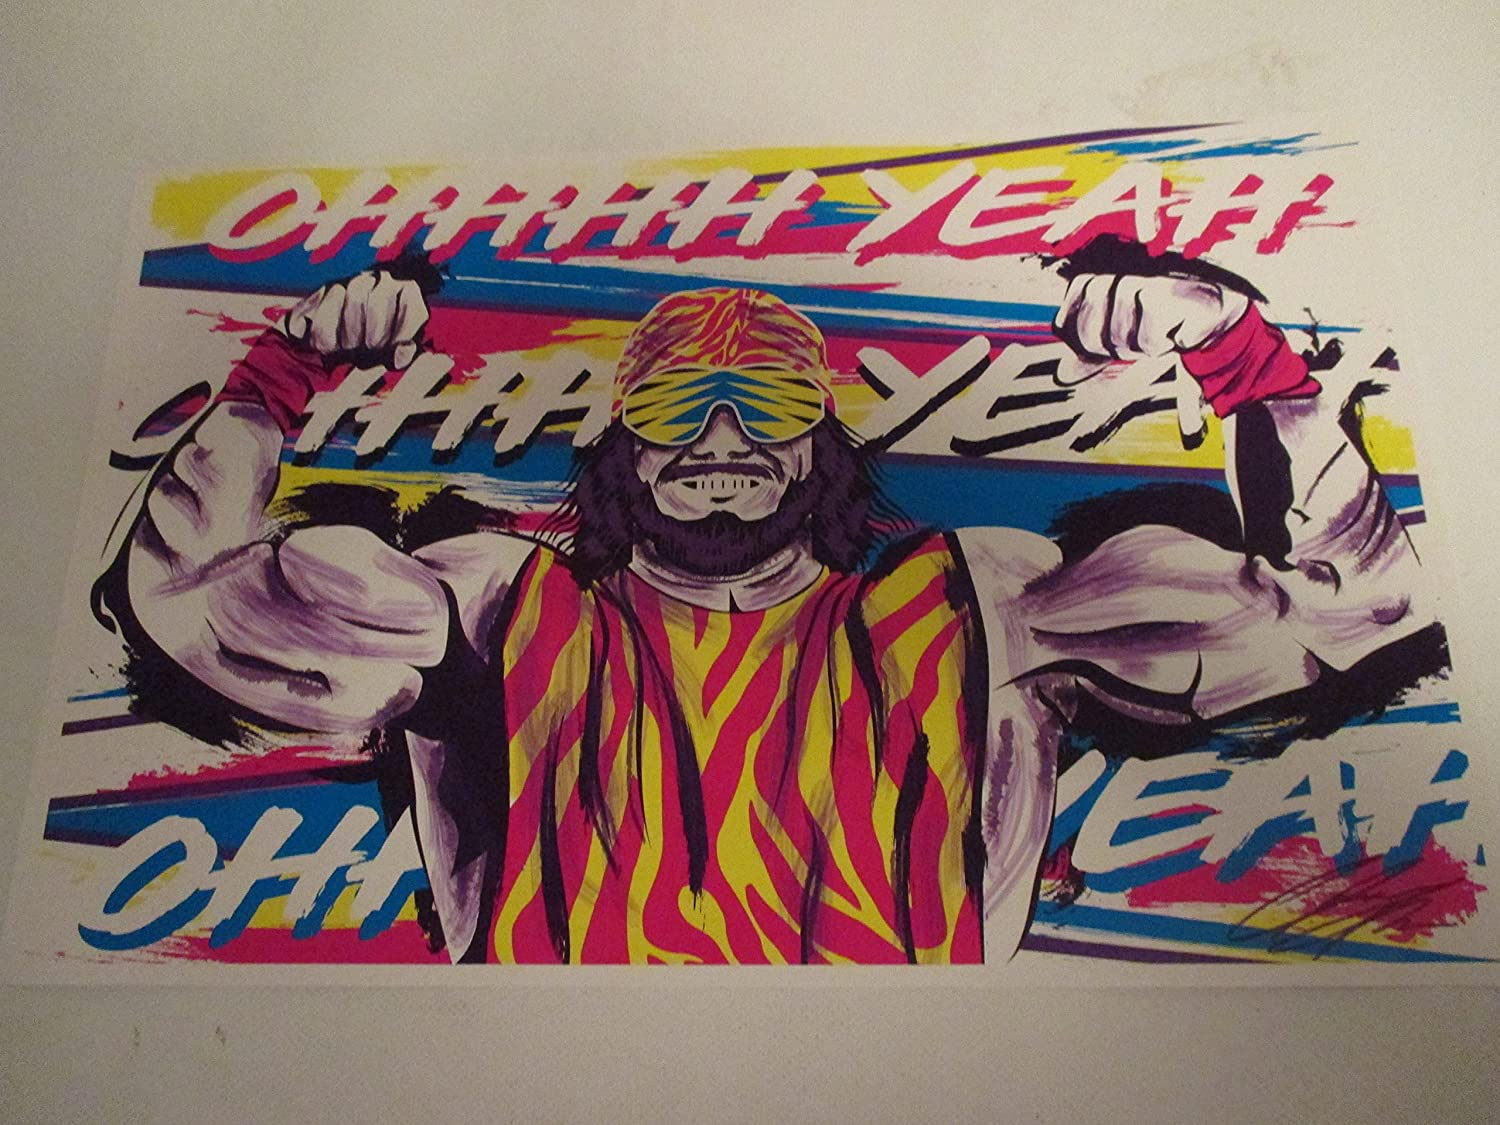 WWE RANDY THE MACHO MAN 11' By 17' Limited Edition Print Signed By Chris Huffman, W/coa WWE RANDY THE MACHO MAN 11 By 17 Limited Edition Print Signed By Chris Huffman